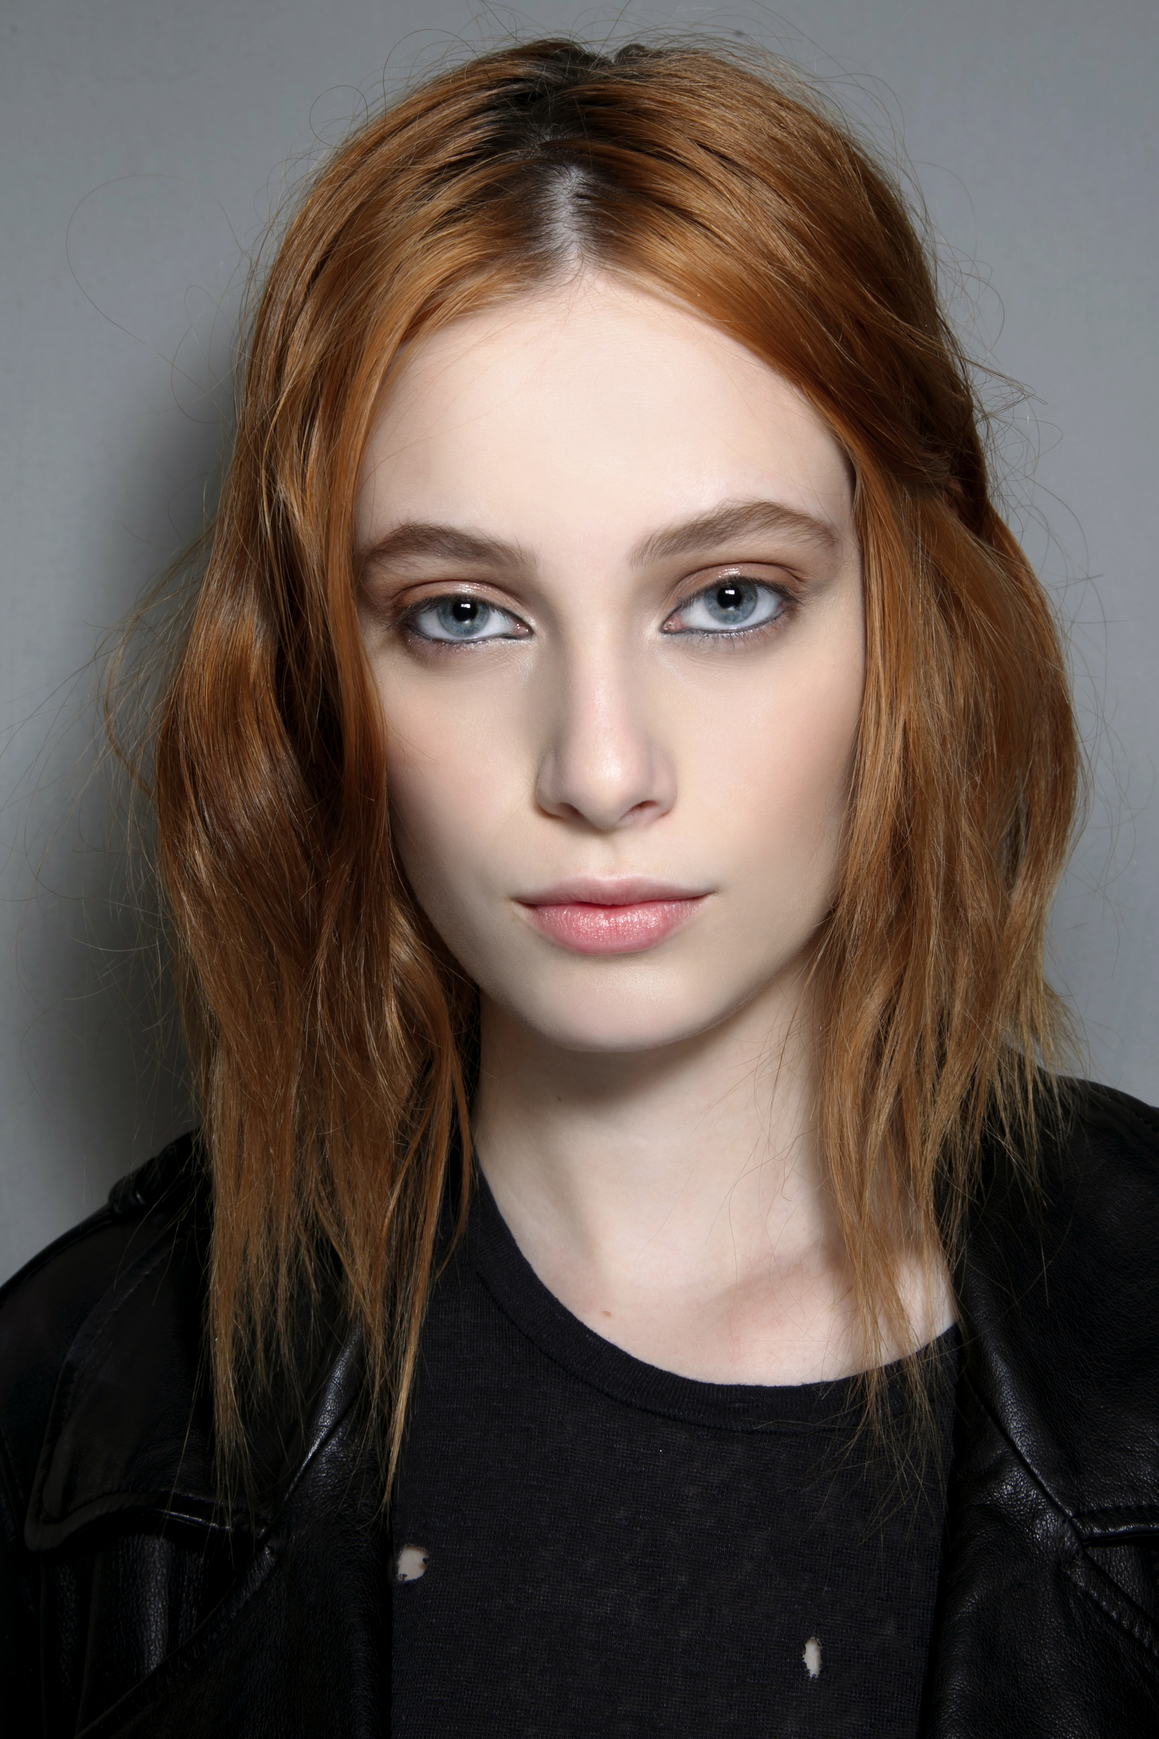 These Are The Best Eyebrow Products For Redheads Stylecaster